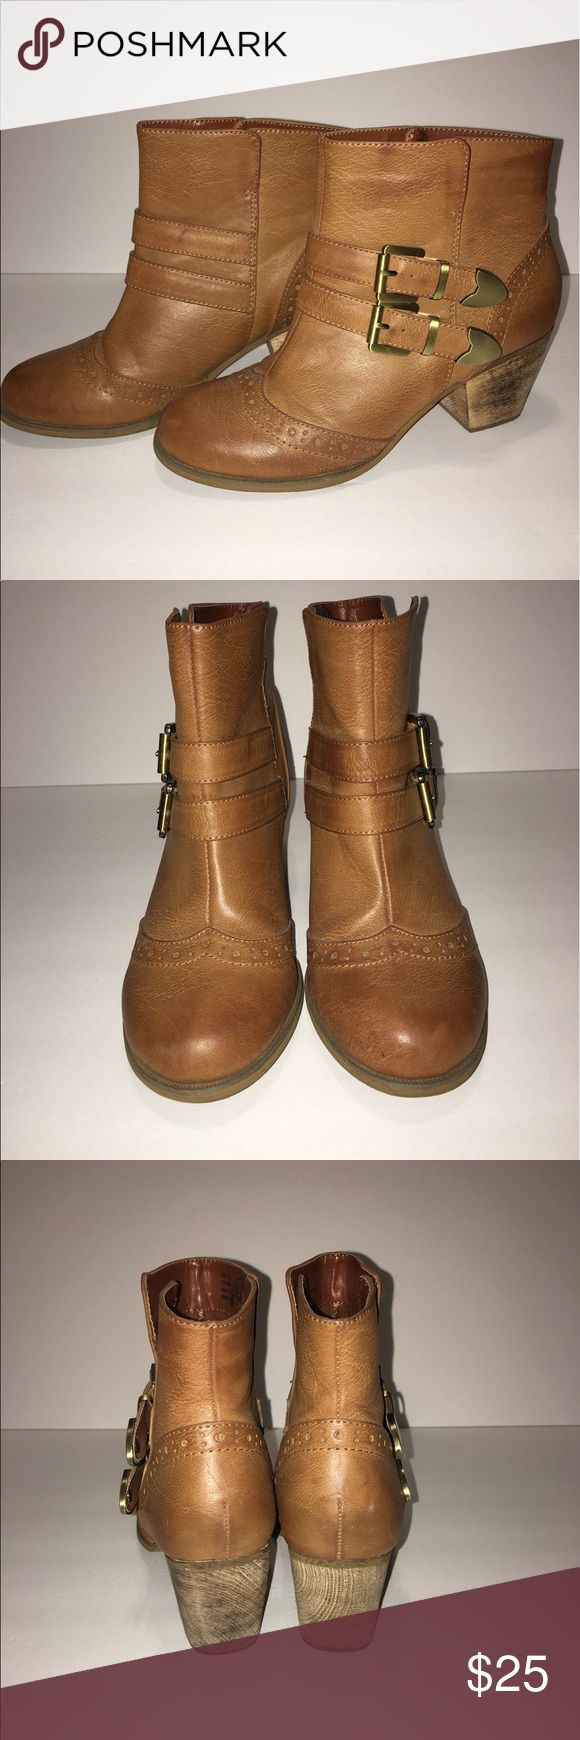 Booties Restricted booties size 7.5 - worn once Restricted Shoes Ankle Boots & Booties